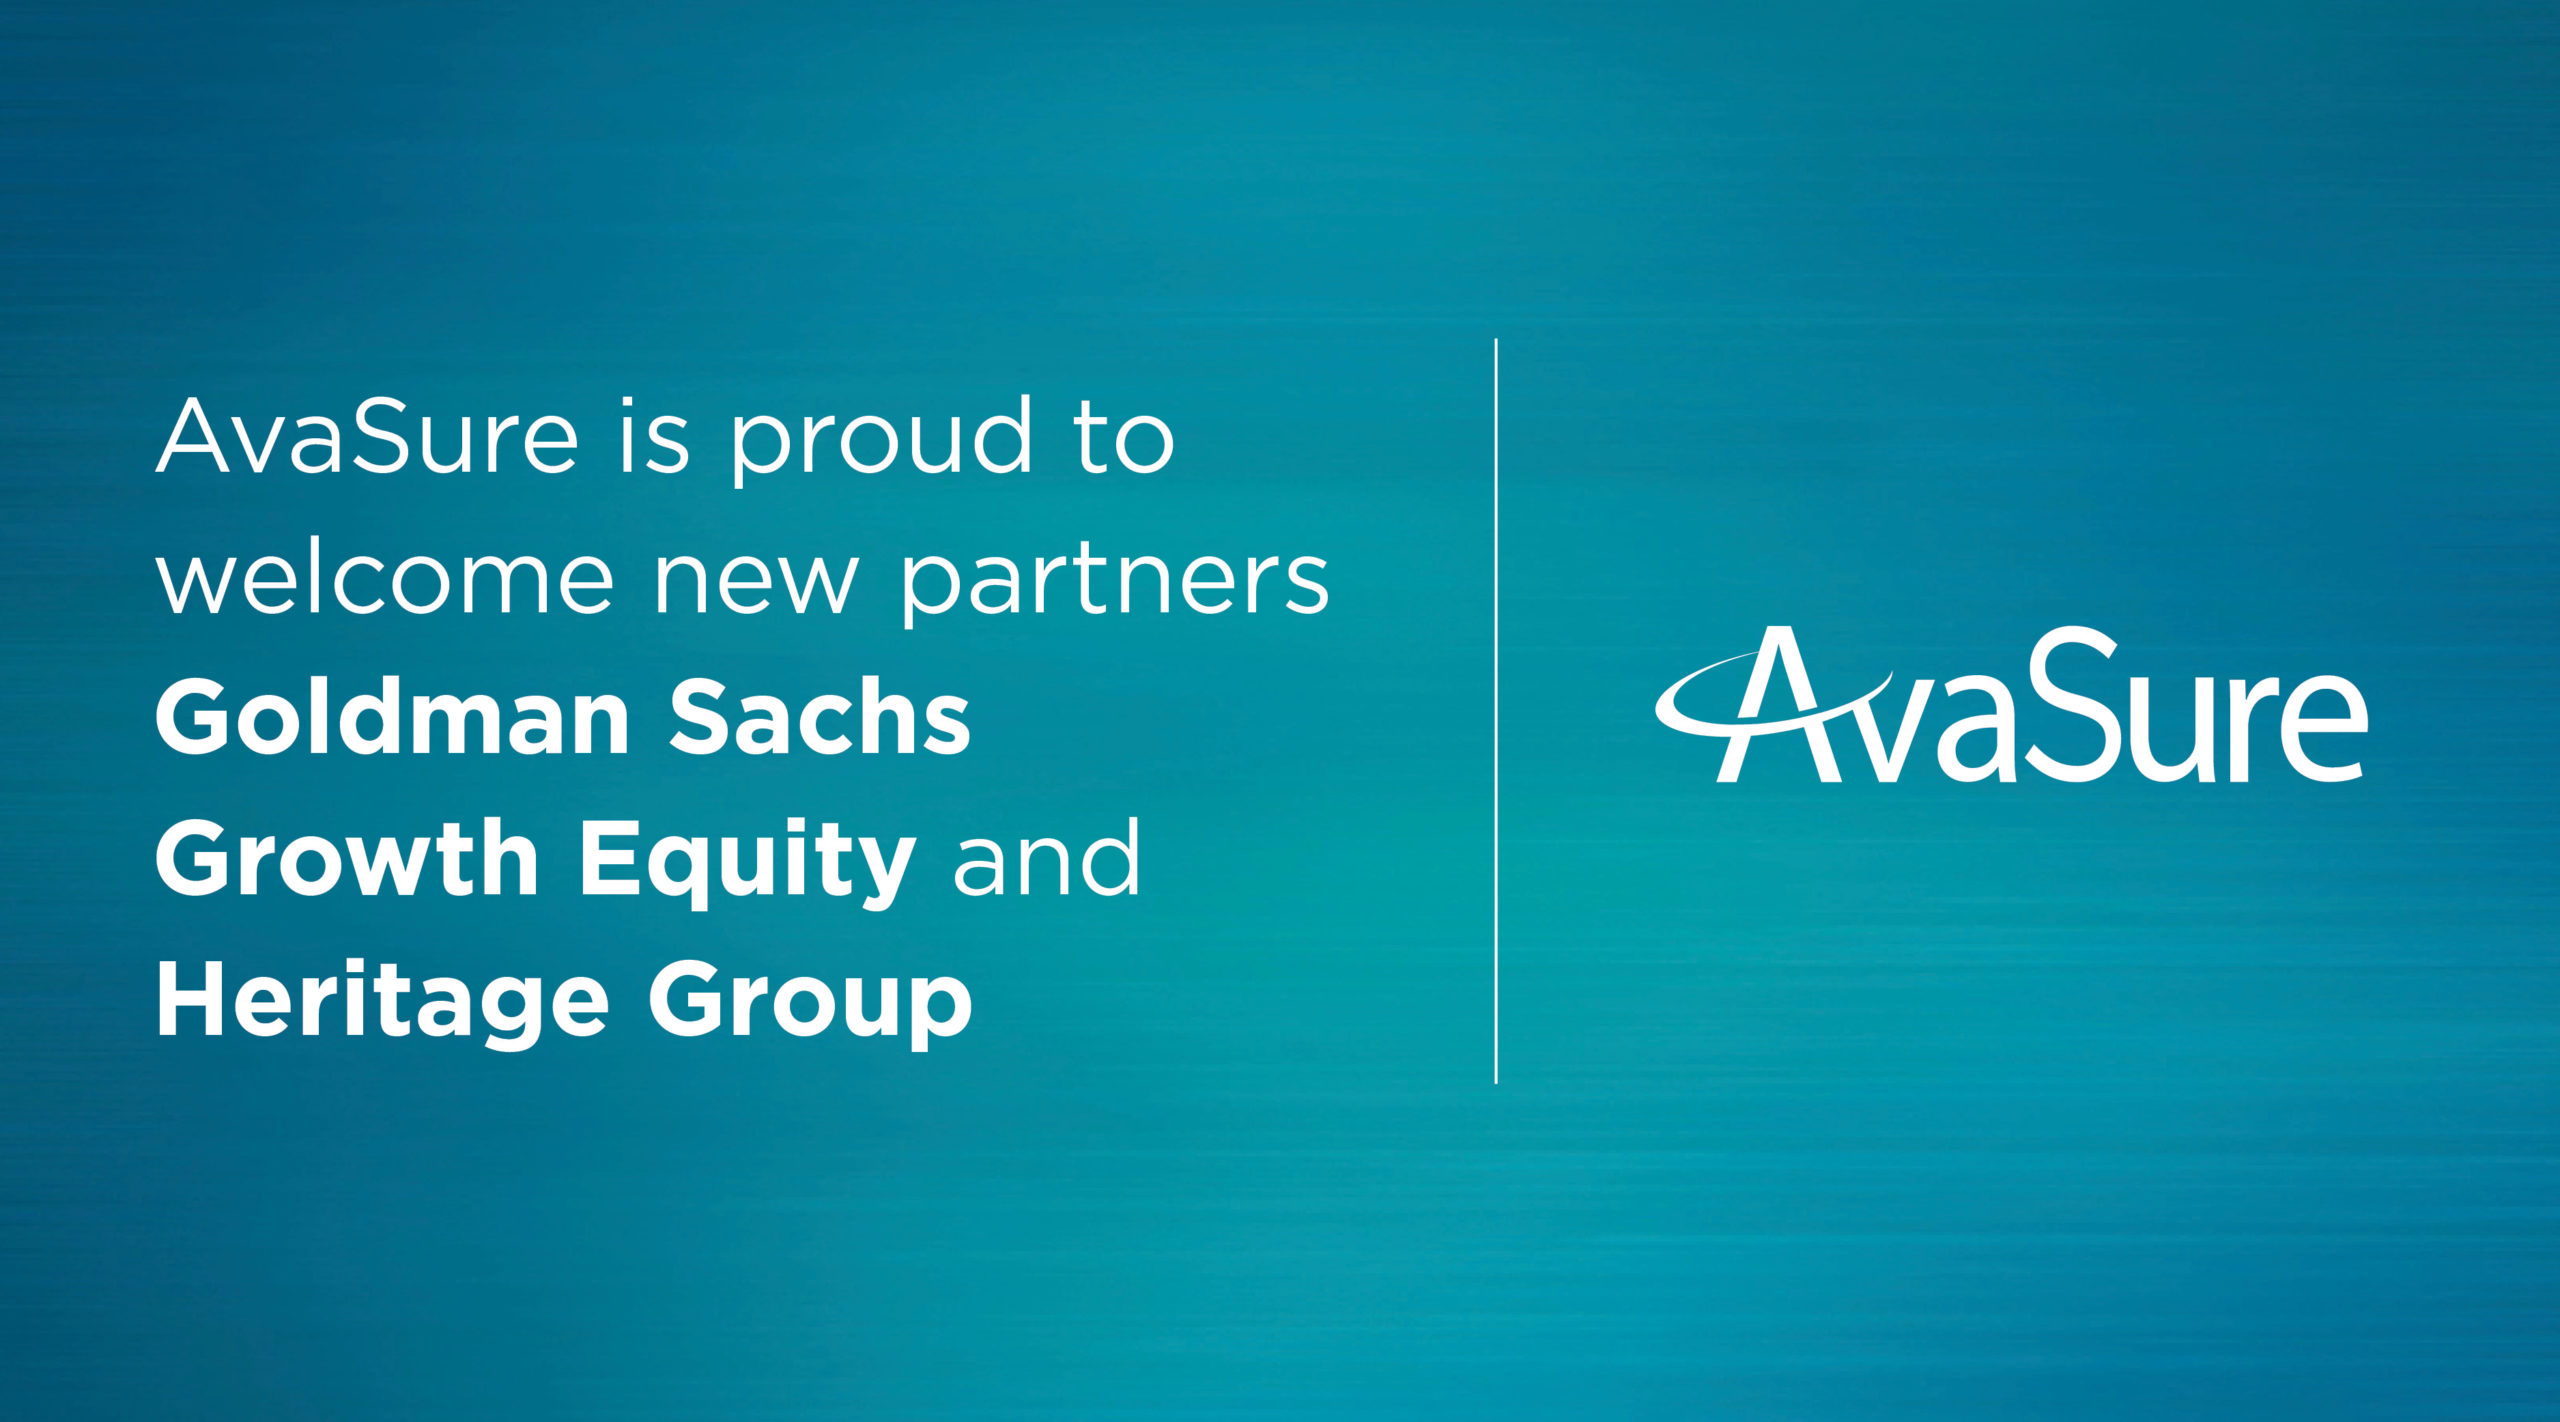 AvaSure Announces Investment from Goldman Sachs and Heritage Group